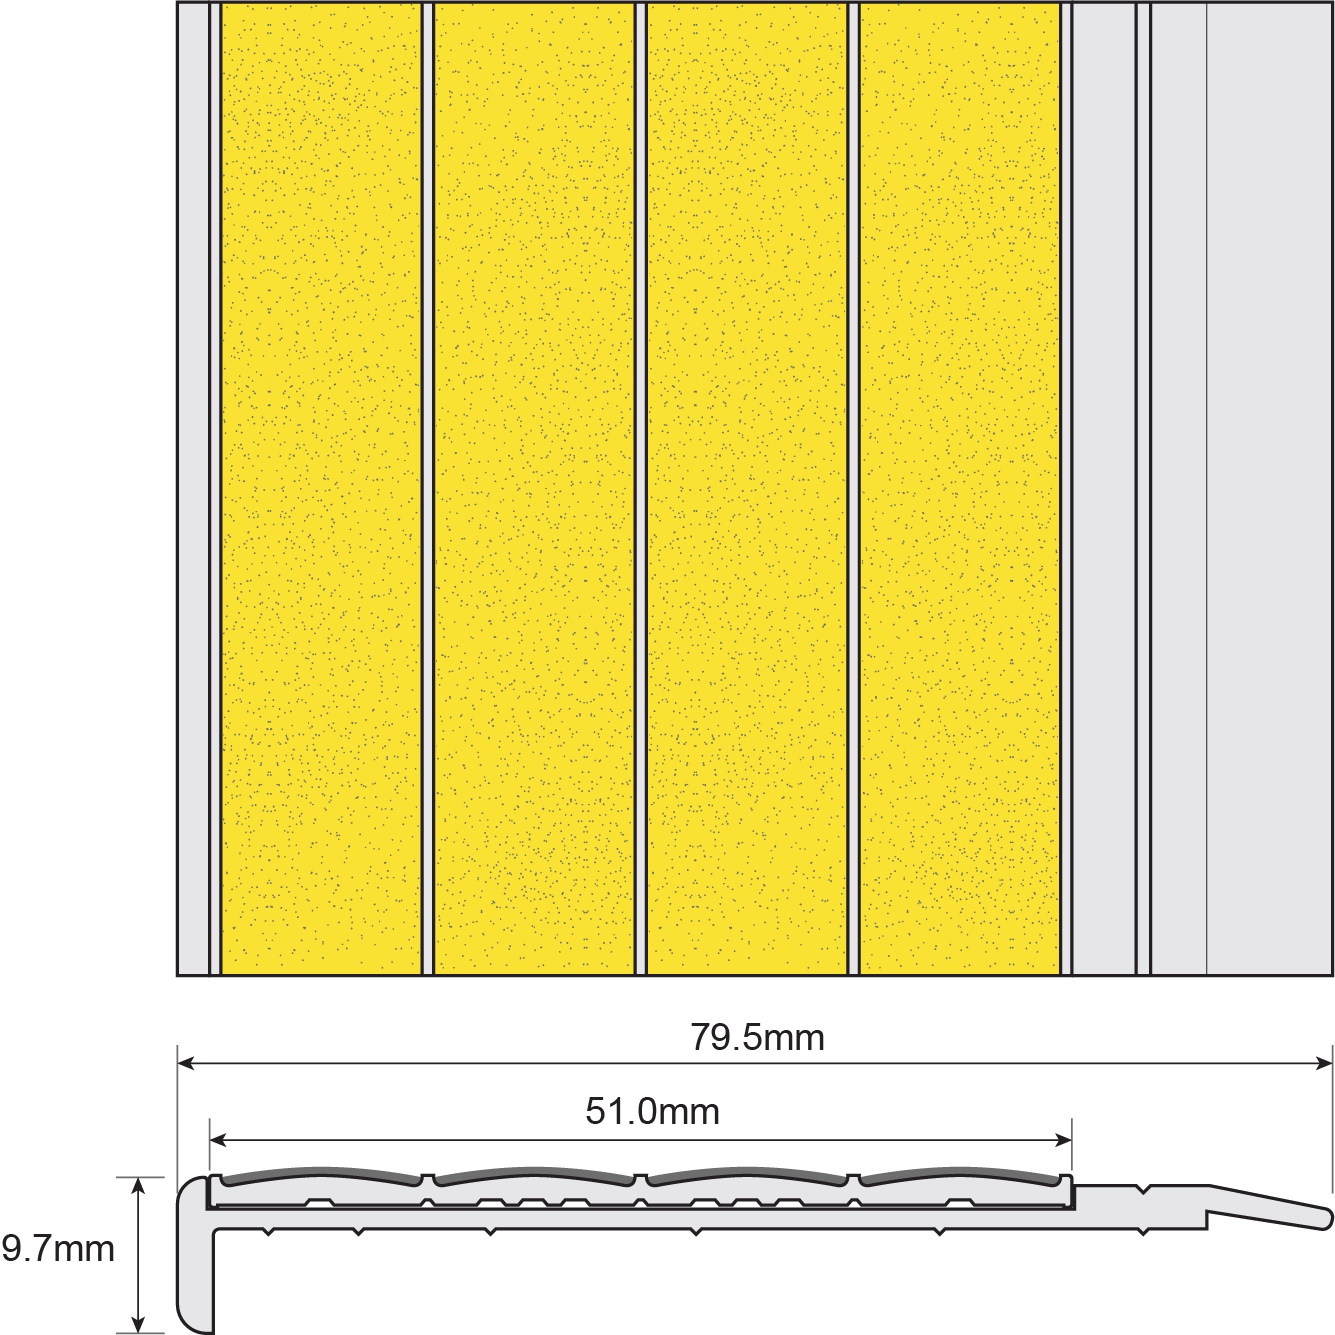 ESP Stair Nosing 9.7x79.5mm F430s150 YELLOW Technical Drawing